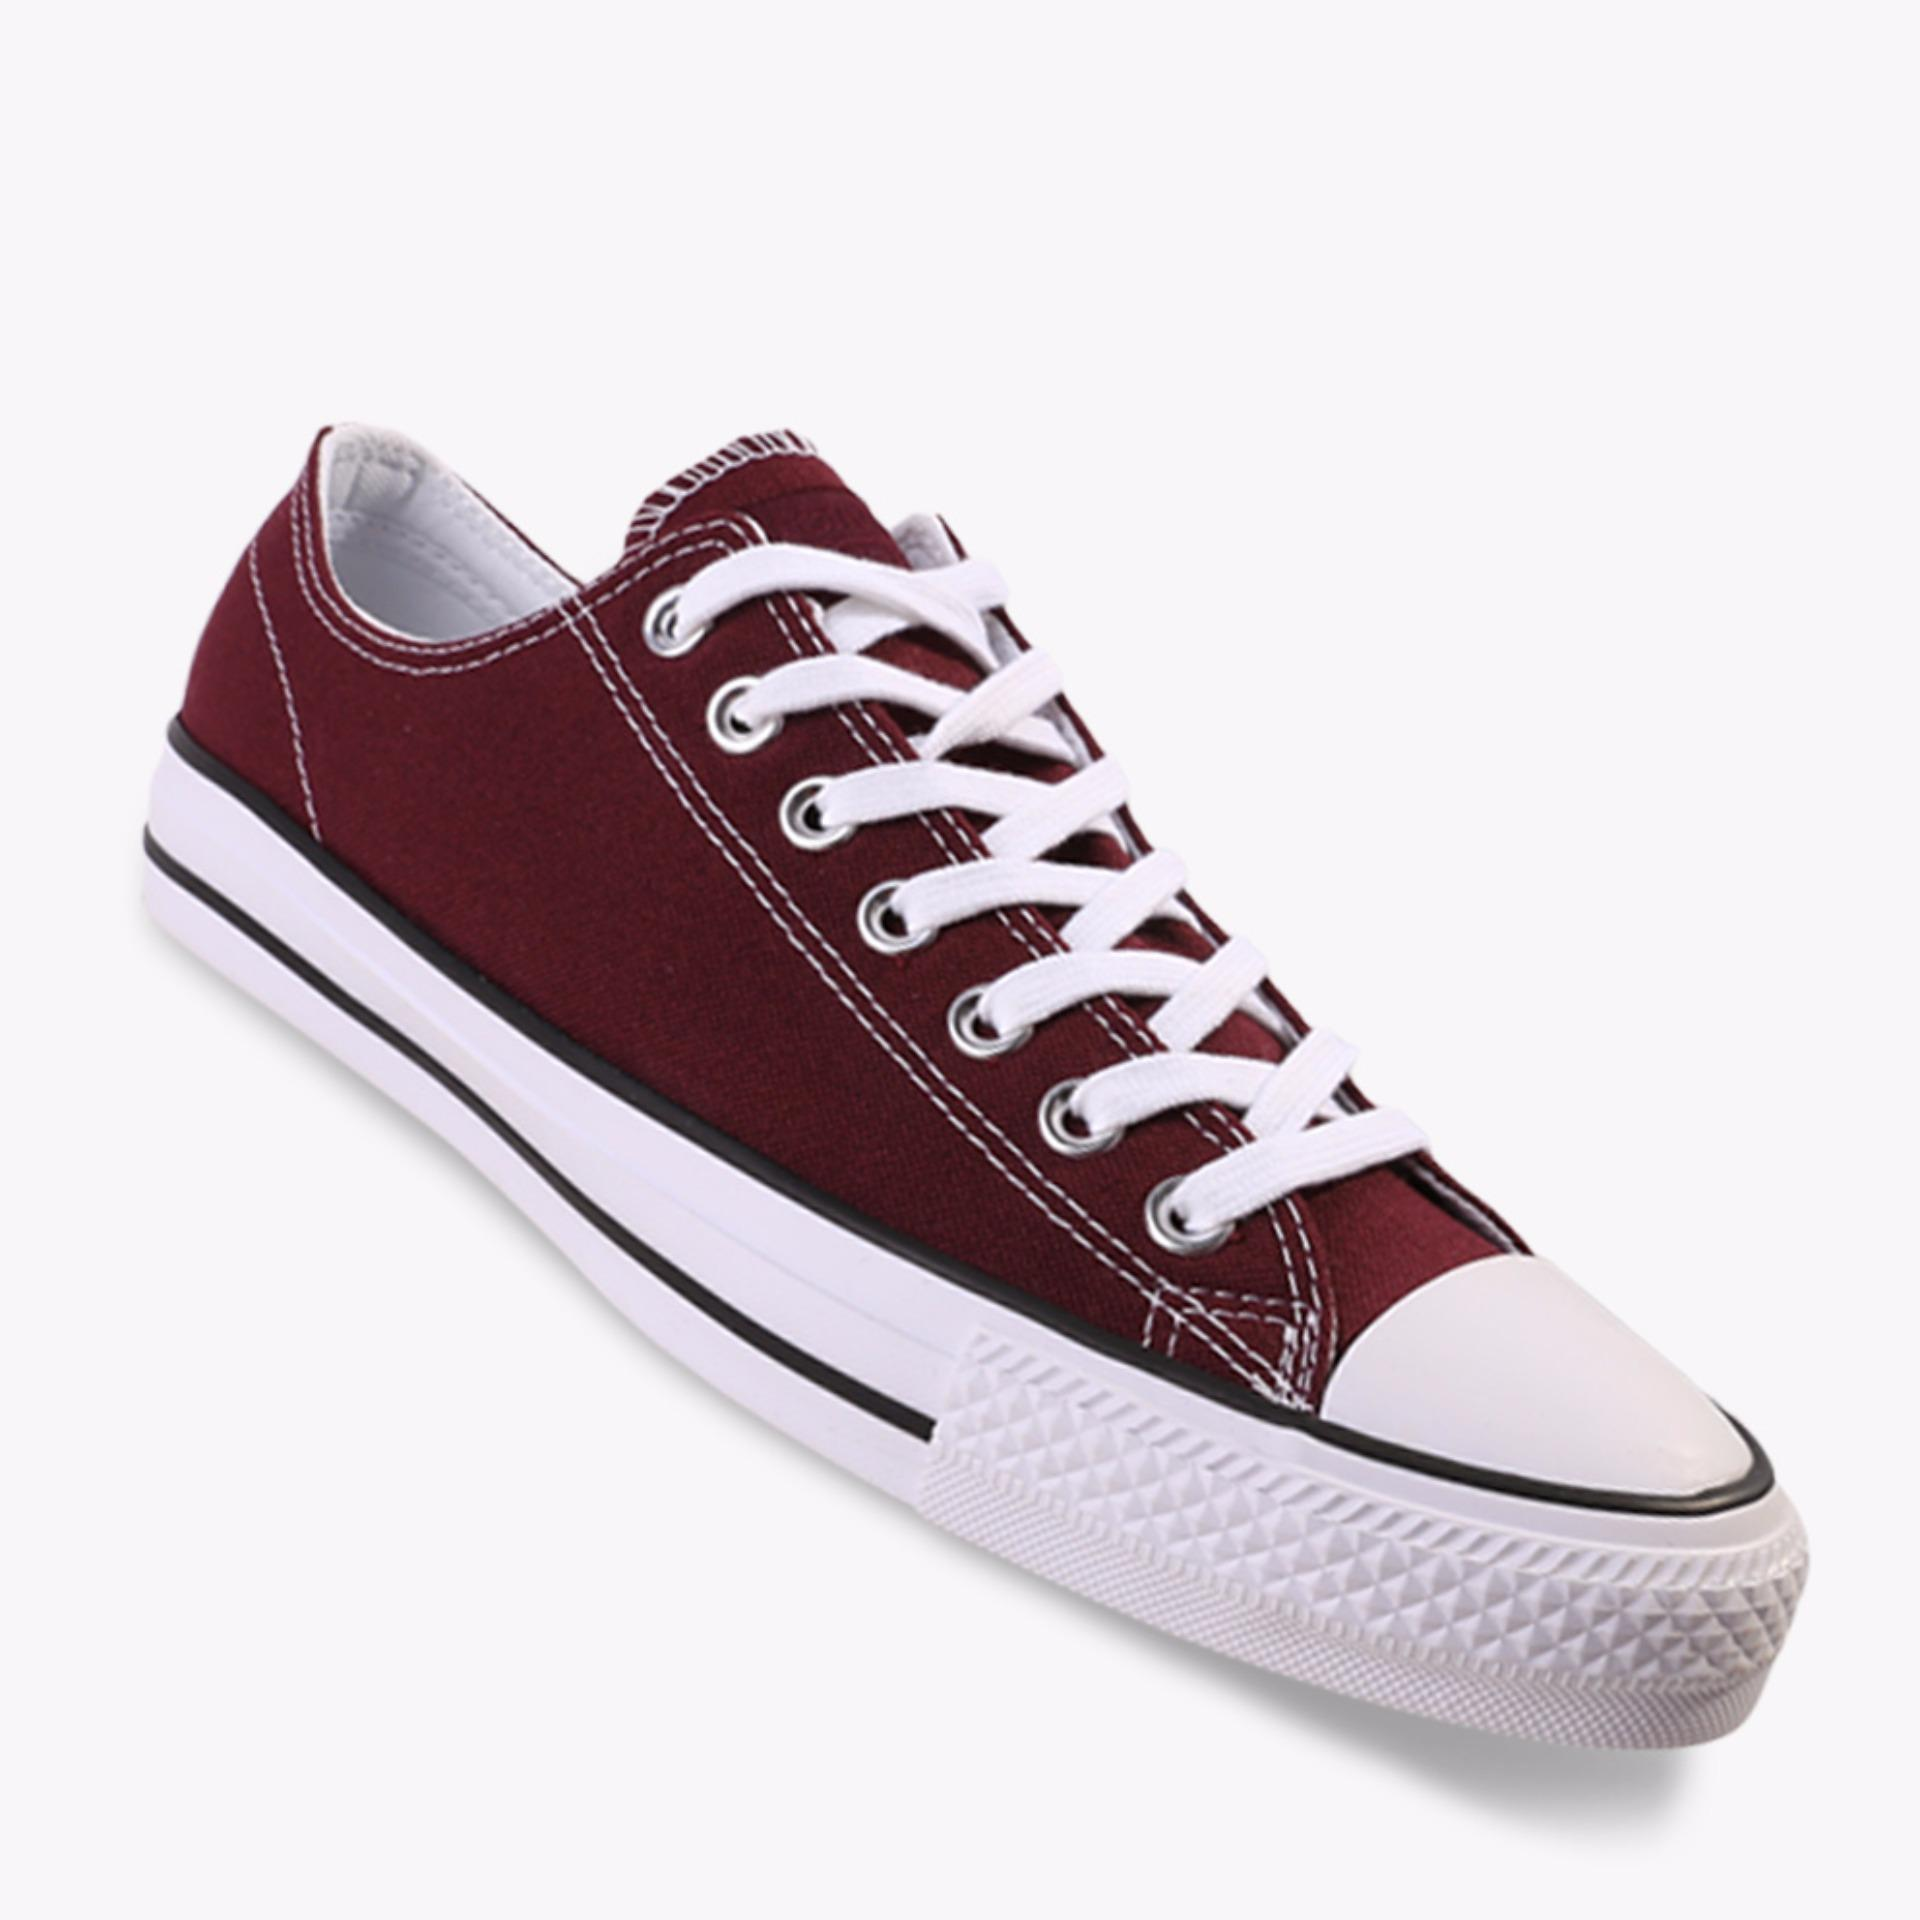 Katalog Converse Chuck Taylor All Star Pro Ox Men S Sneakers Shoes Maroon Terbaru